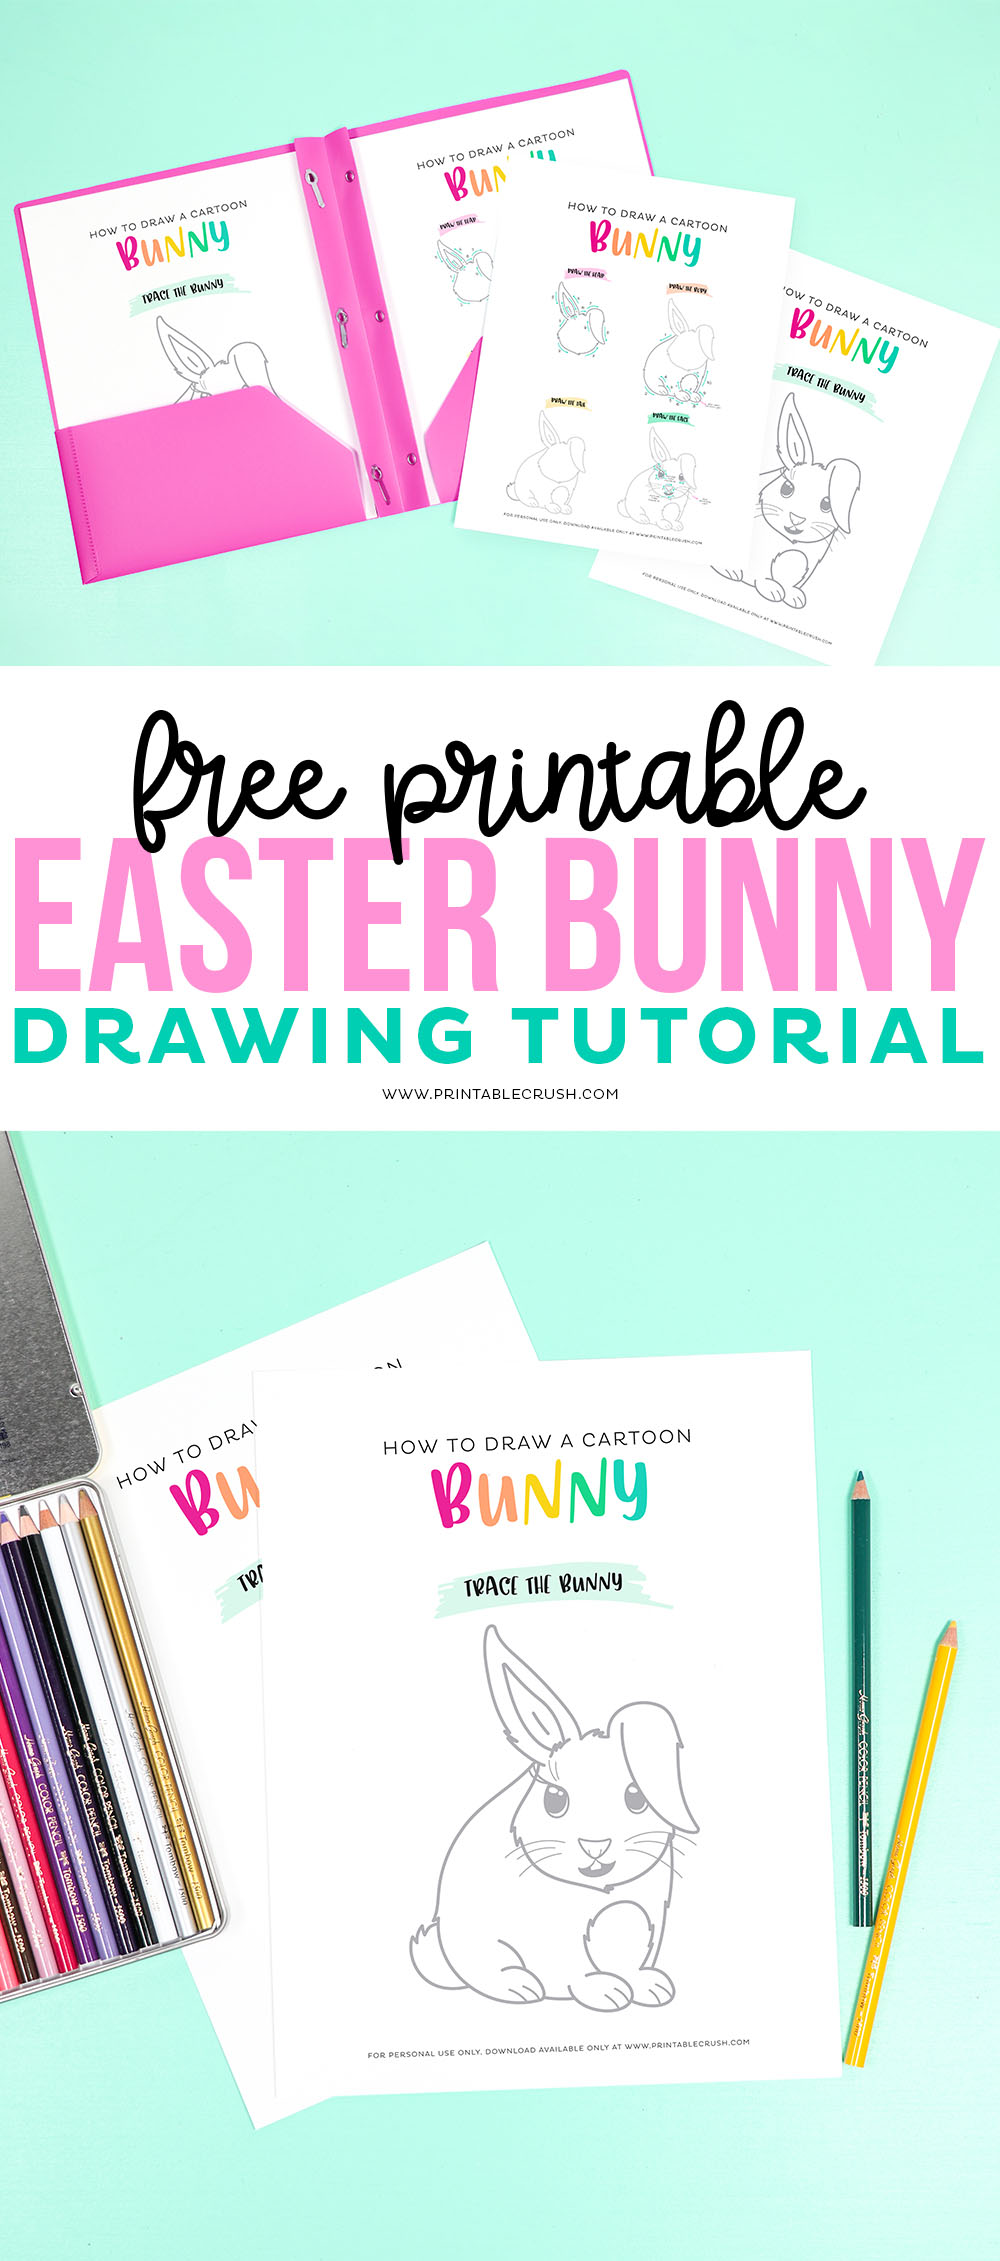 Free Easter Bunny Drawing Tutorial Printable - Easter Bunny Printable Drawing Tutorial - Free Easter Bunny Drawing Tutorial - Printable Crush